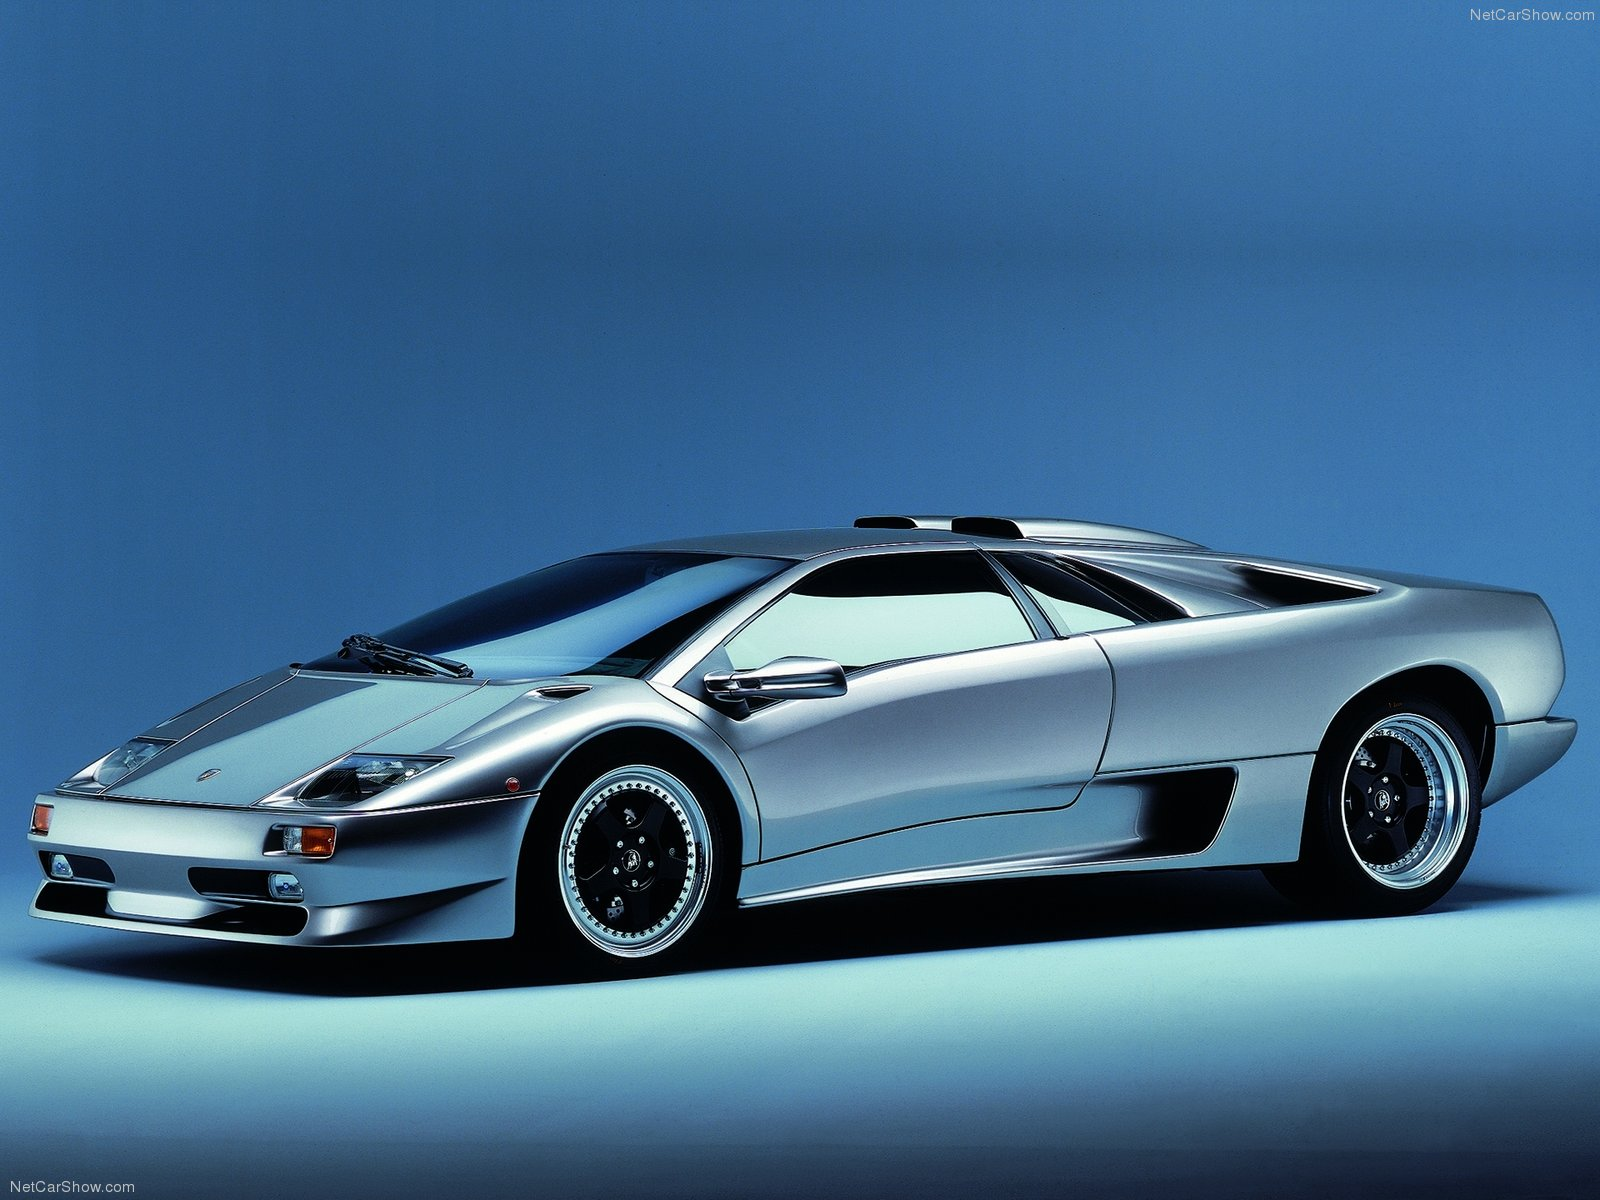 You Can Buy A 1999 Lamborghini Diablo Sv With One Mile On The